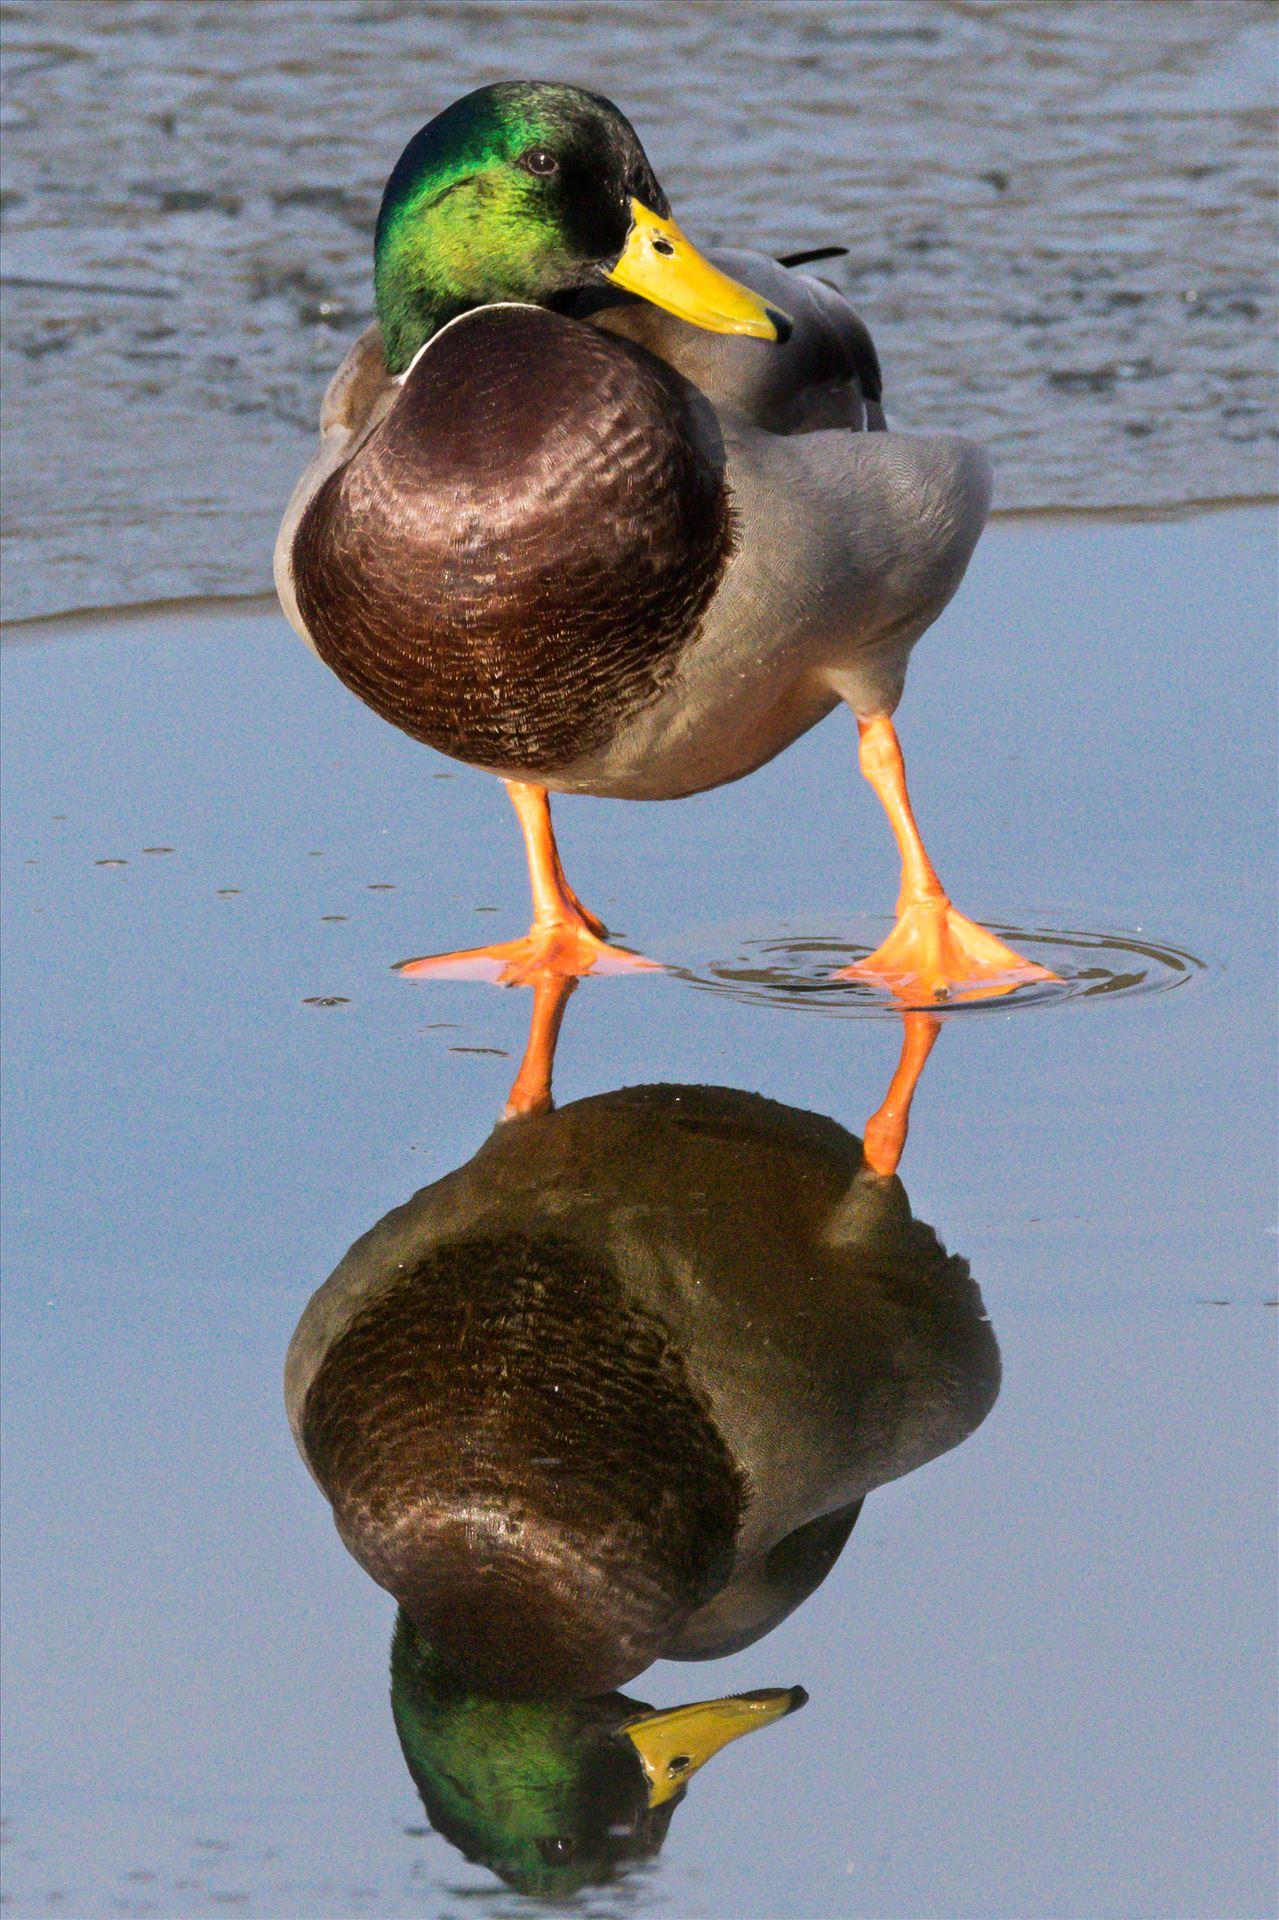 Mallard Duck Reflection RSPB Slatholme - A cold and frozen pond at RSPB Saltholme taken November 2017 by AJ Stoves Photography